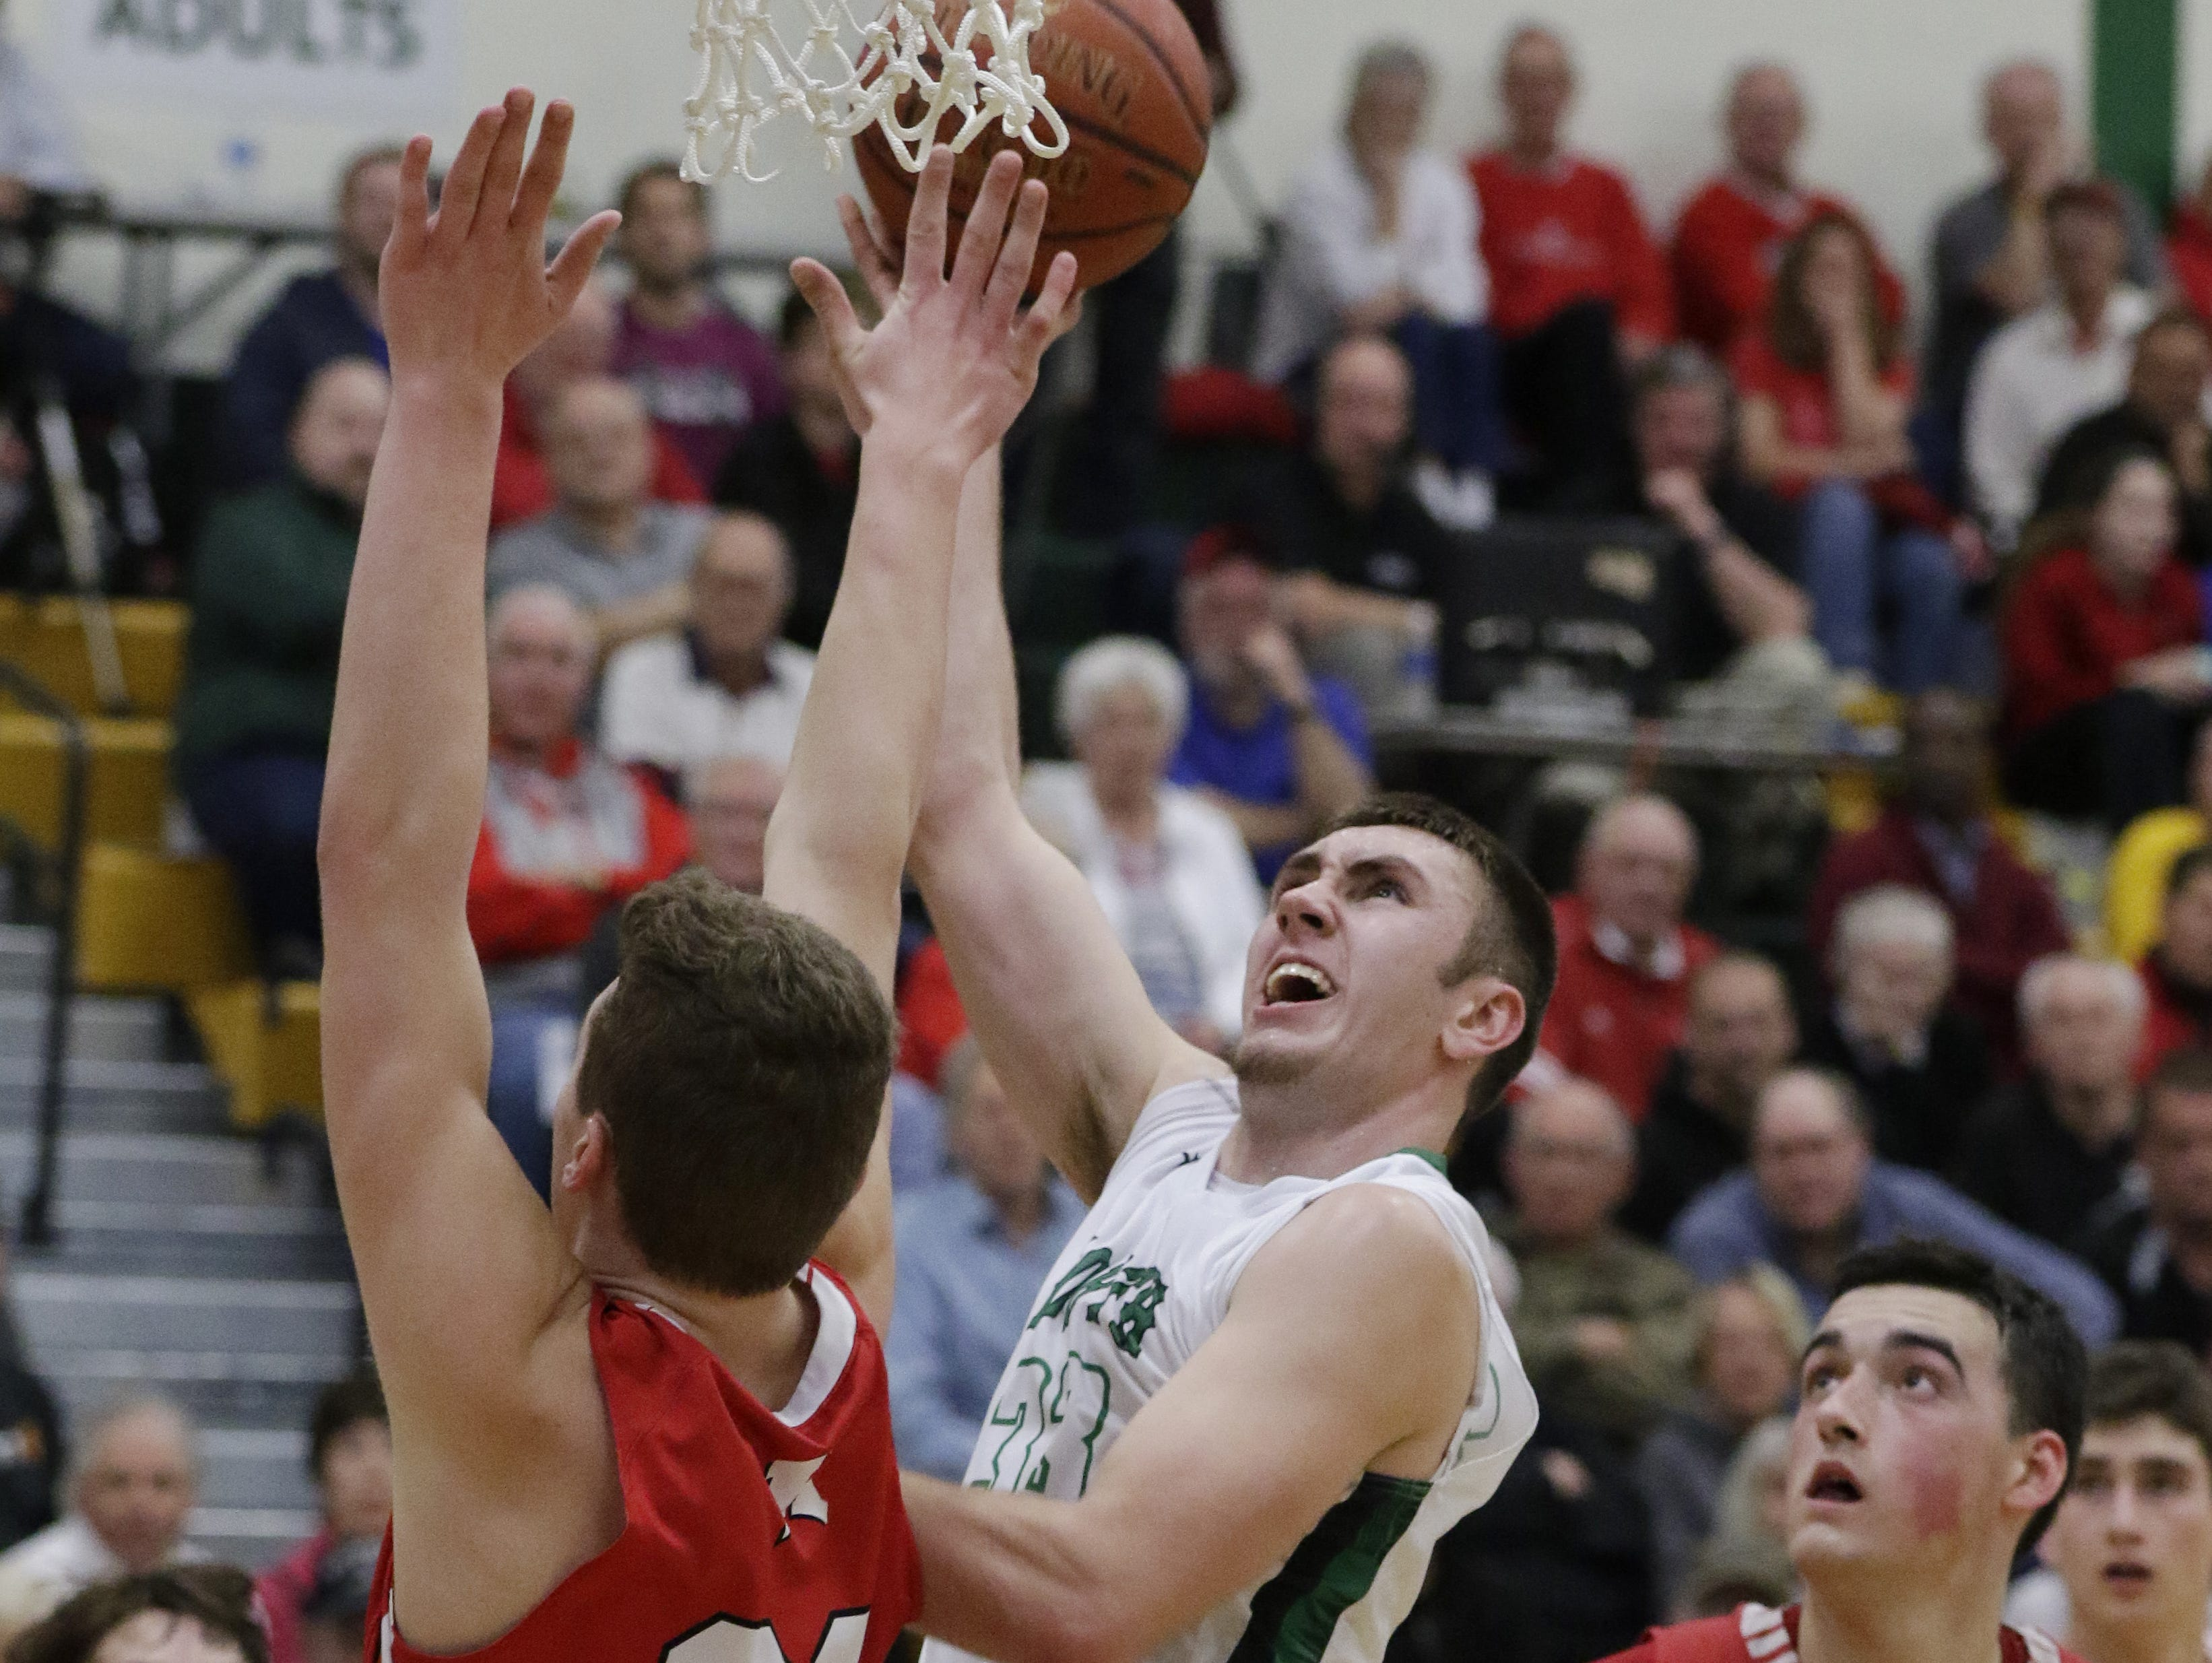 Oshkosh North's Philip Flory puts up a shot over Kimberly's Levi Nienhaus-Borchert in the second half on Tuesday.